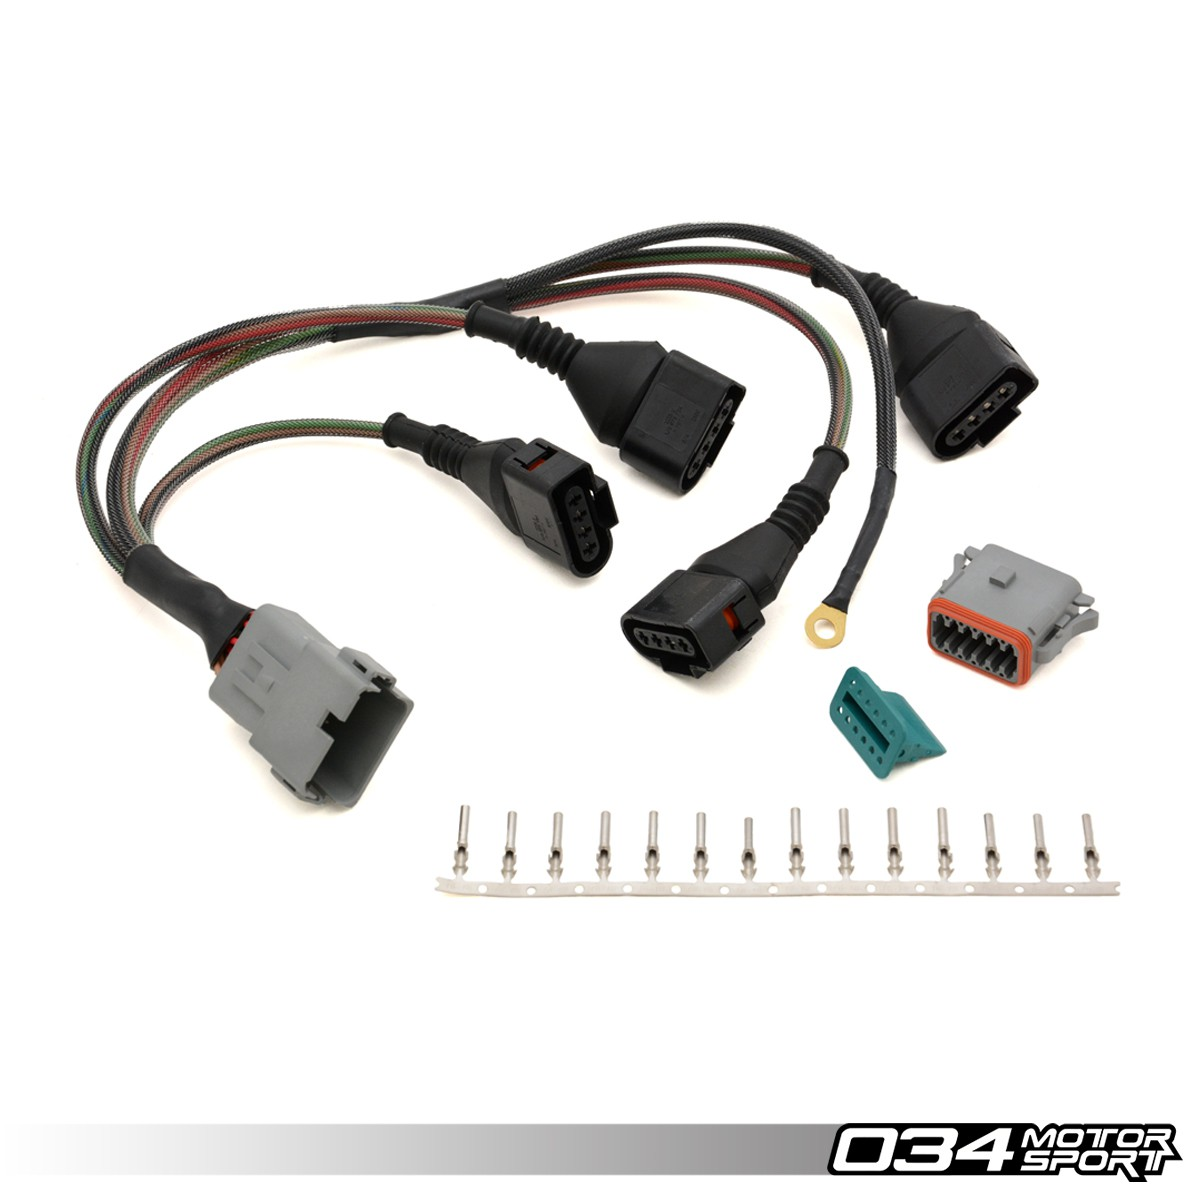 repair update harness audi volkswagen 18t with 4 wire coils 034motorsport 034 701 0004 2 repair update harness, audi volkswagen 1 8t with 4 wire coils Audi Ignition Coil Problem at cos-gaming.co